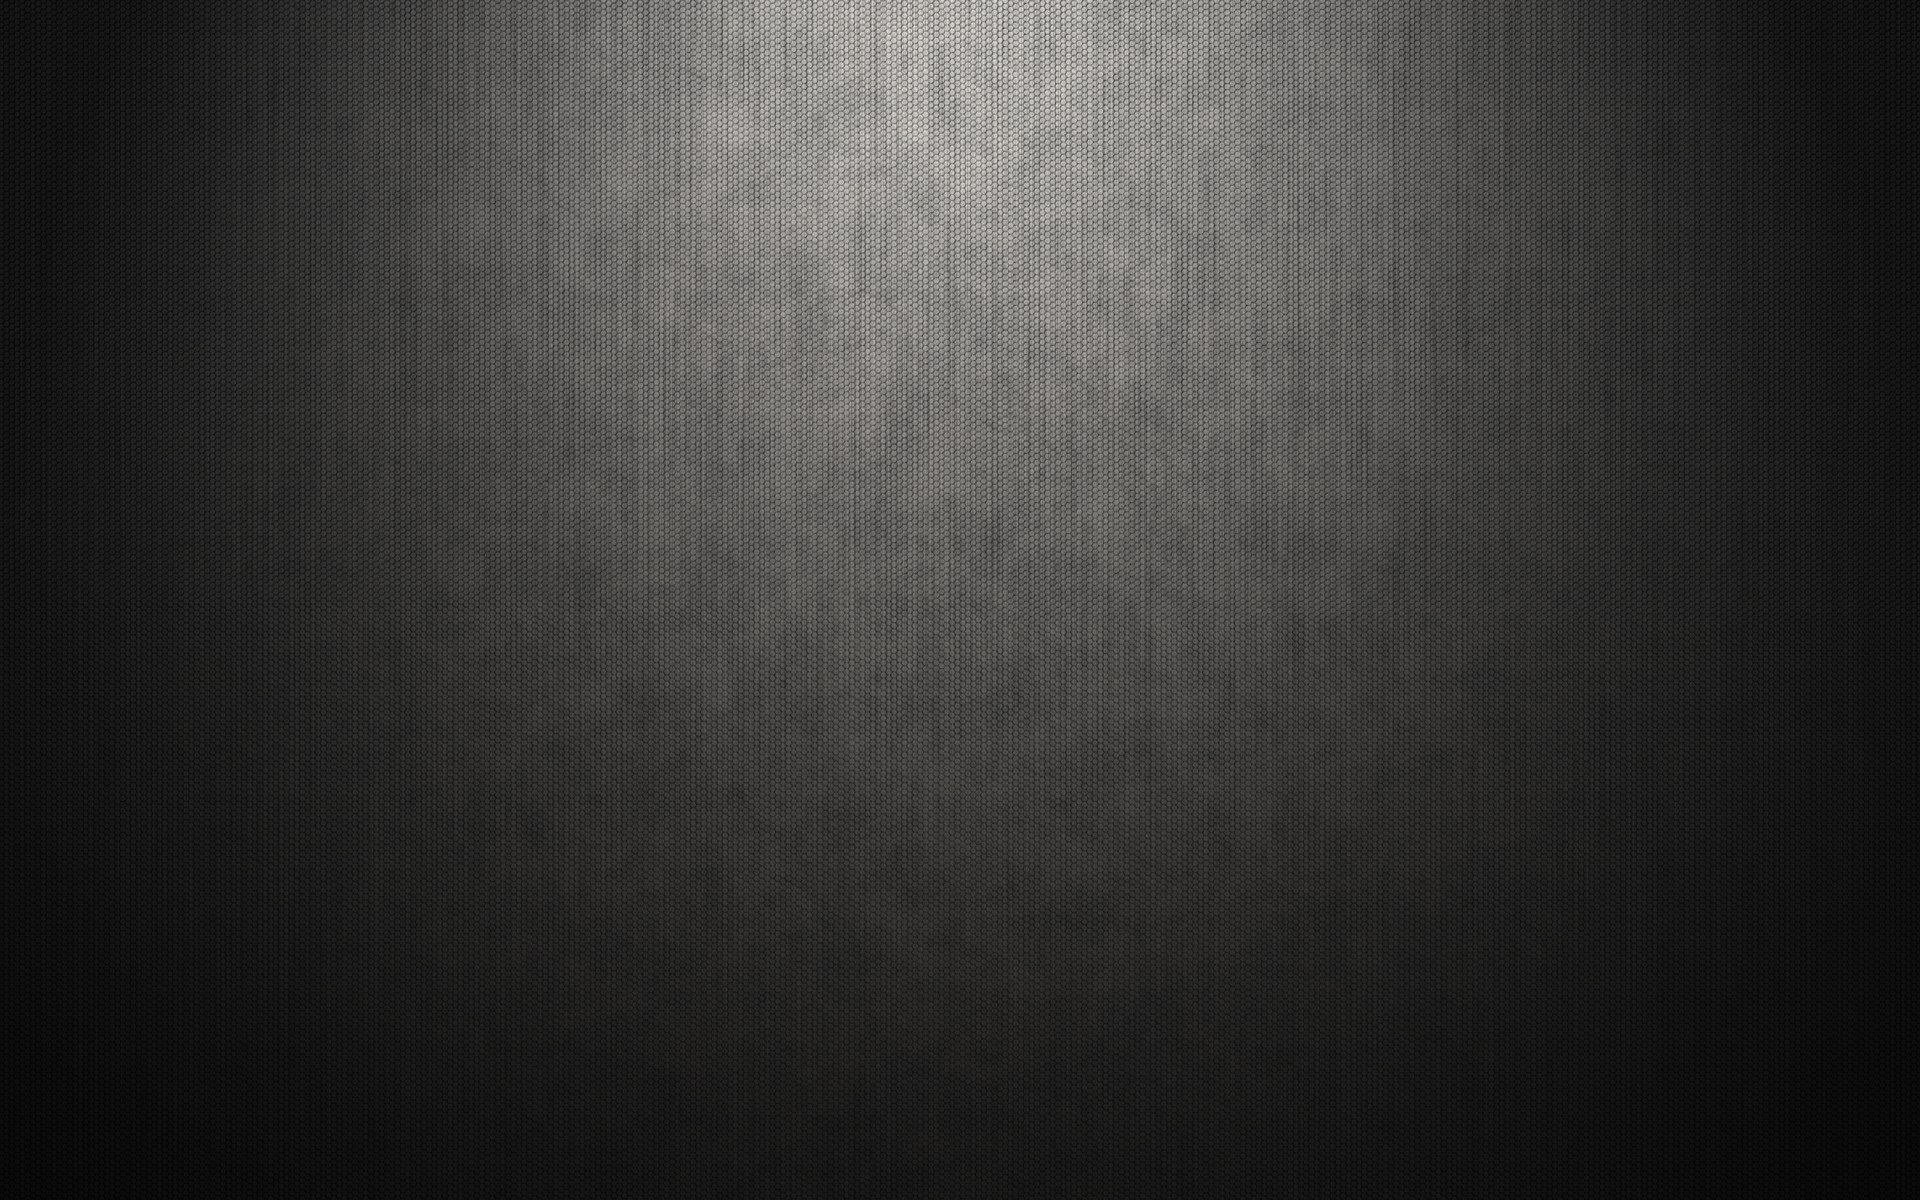 cool website backgrounds jpg thomas lhomme